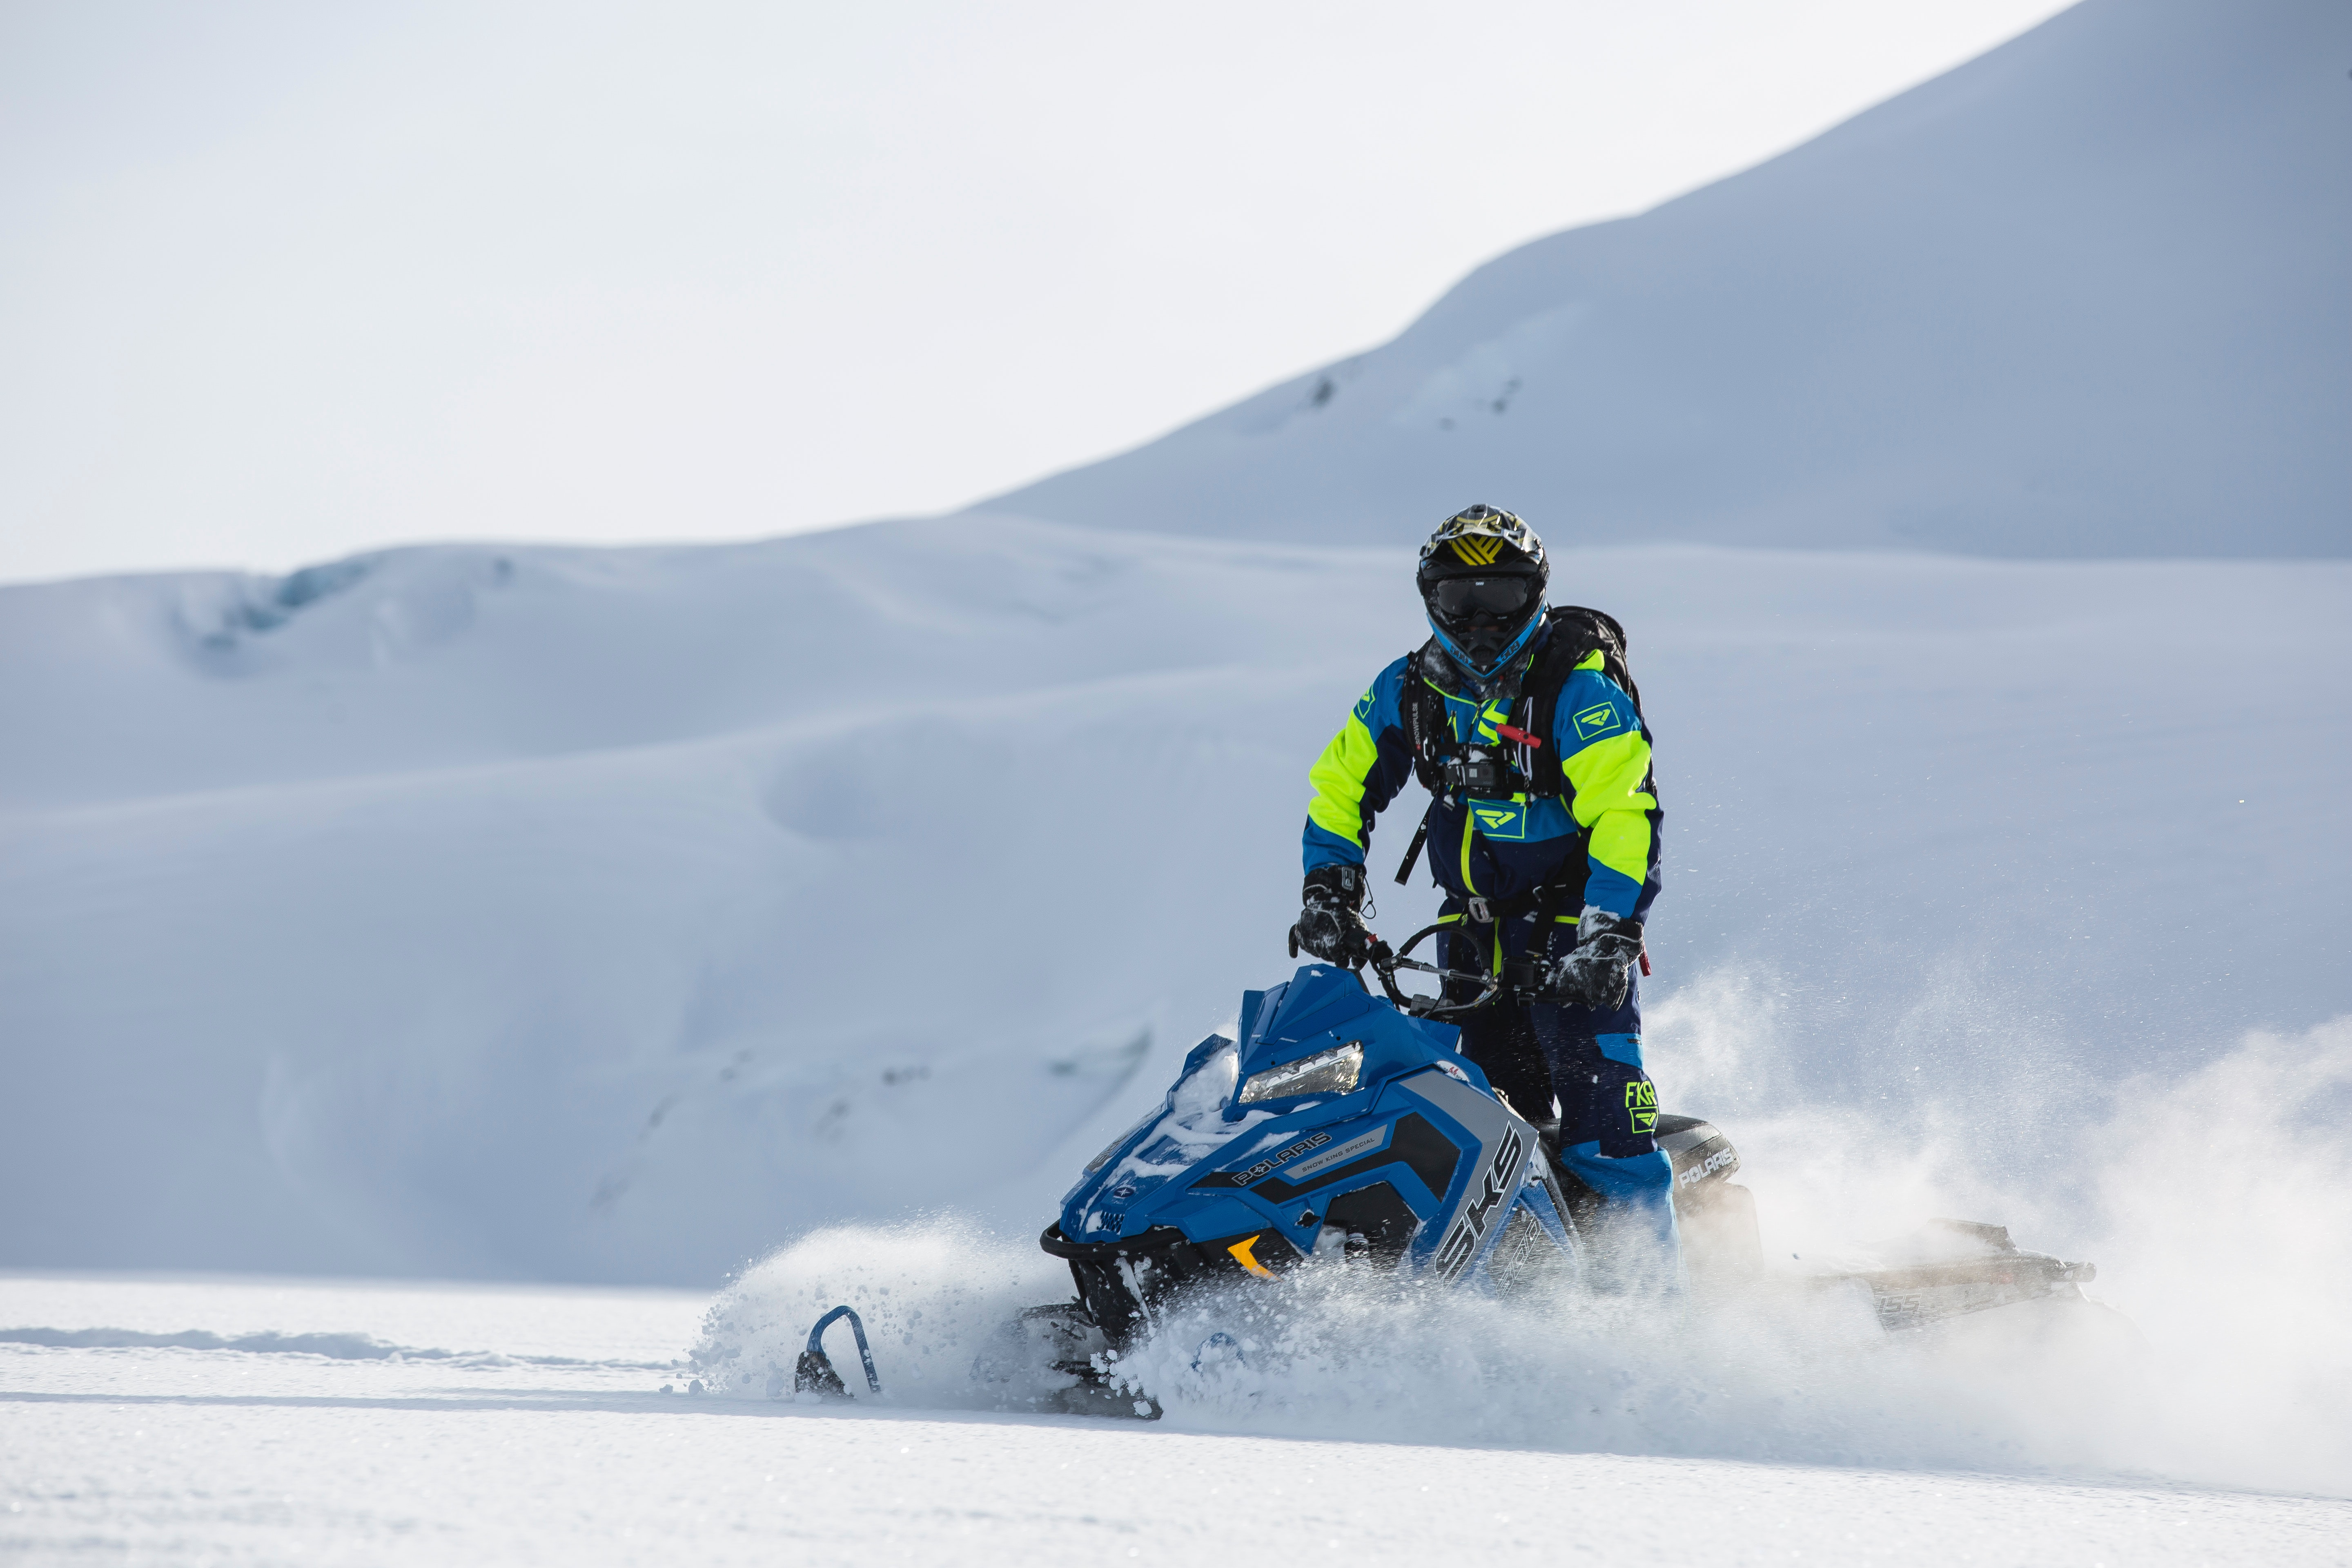 Person Rides on Blue Snowmobile at Daytime, Action, Nature, Outdoors, Peak, HQ Photo